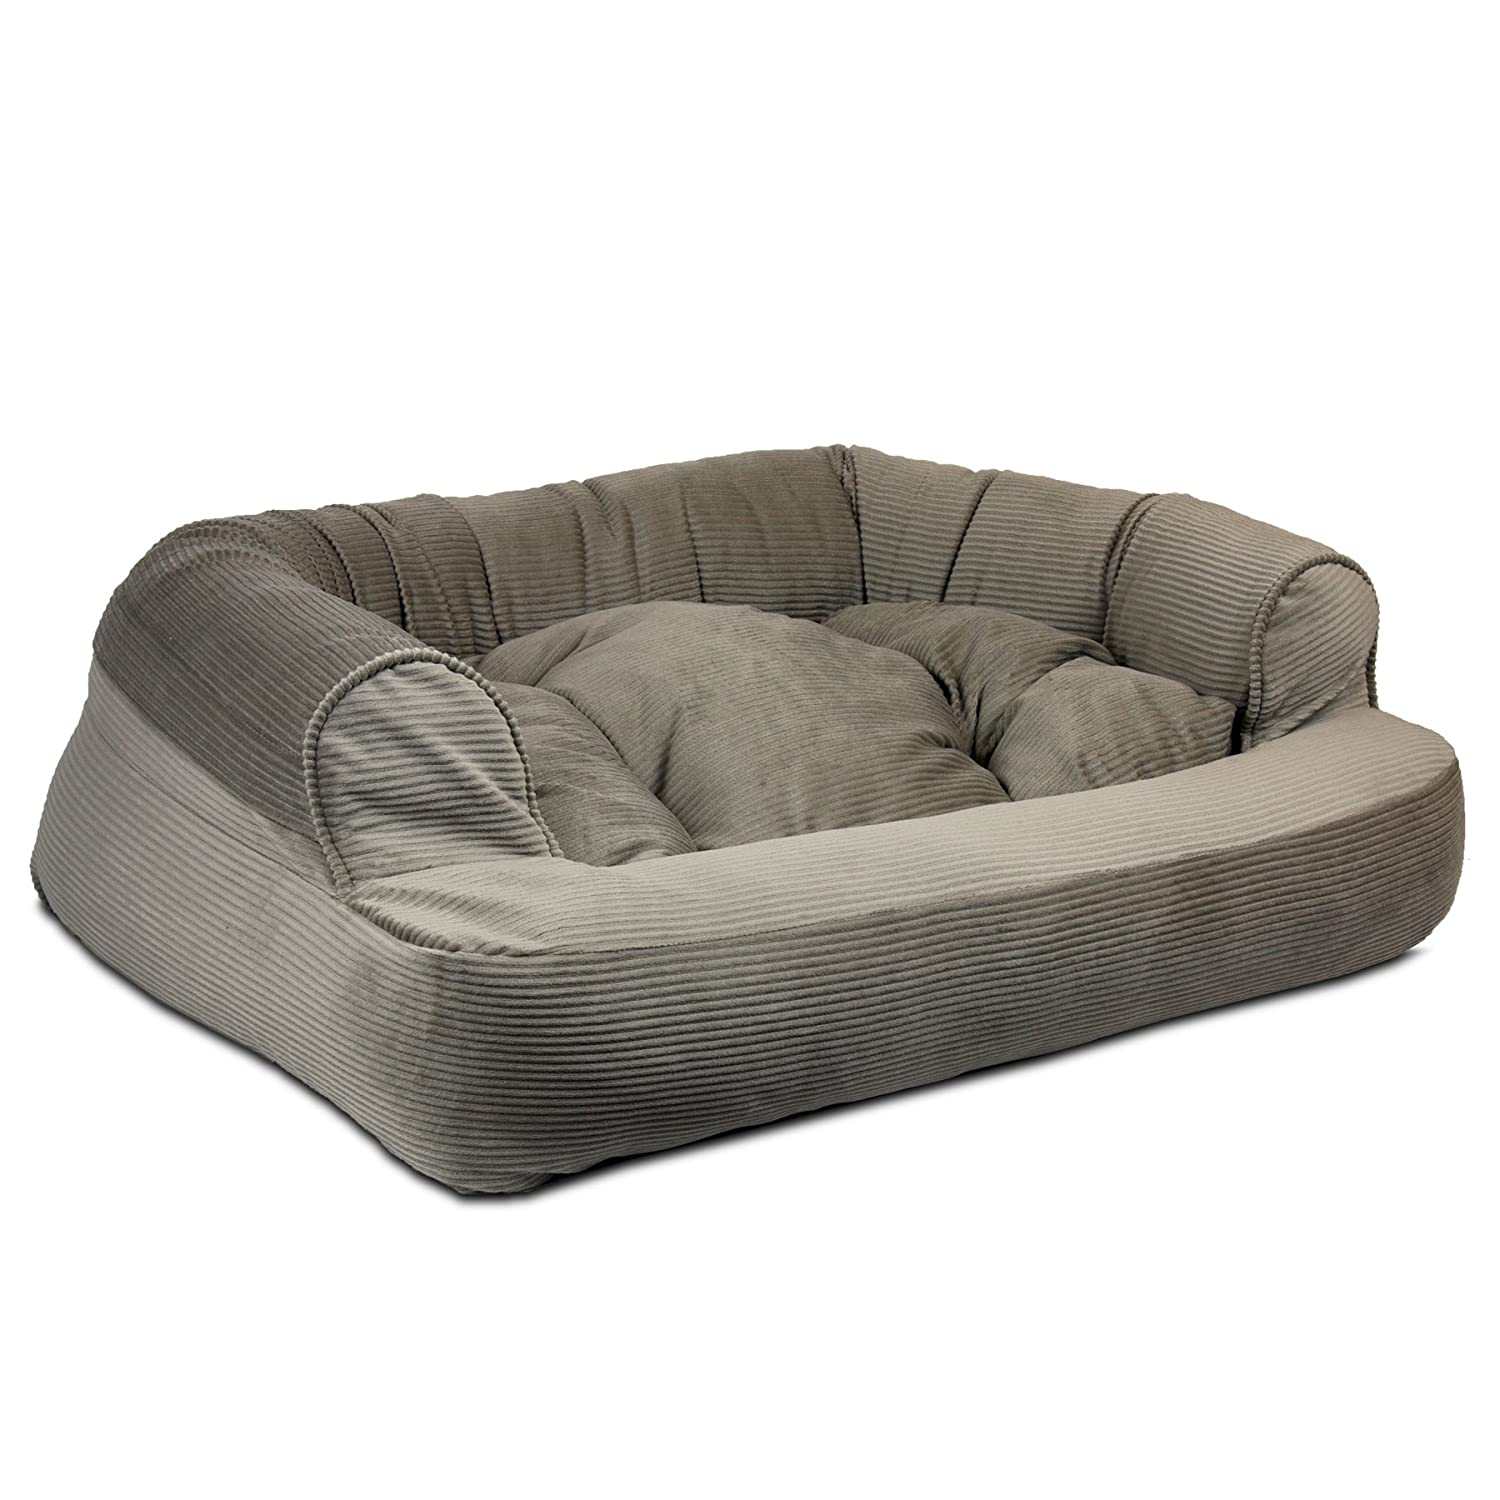 Large Snoozer 14157 Large Overstuffed Luxury Pet Sofa, Tgold Cocoa